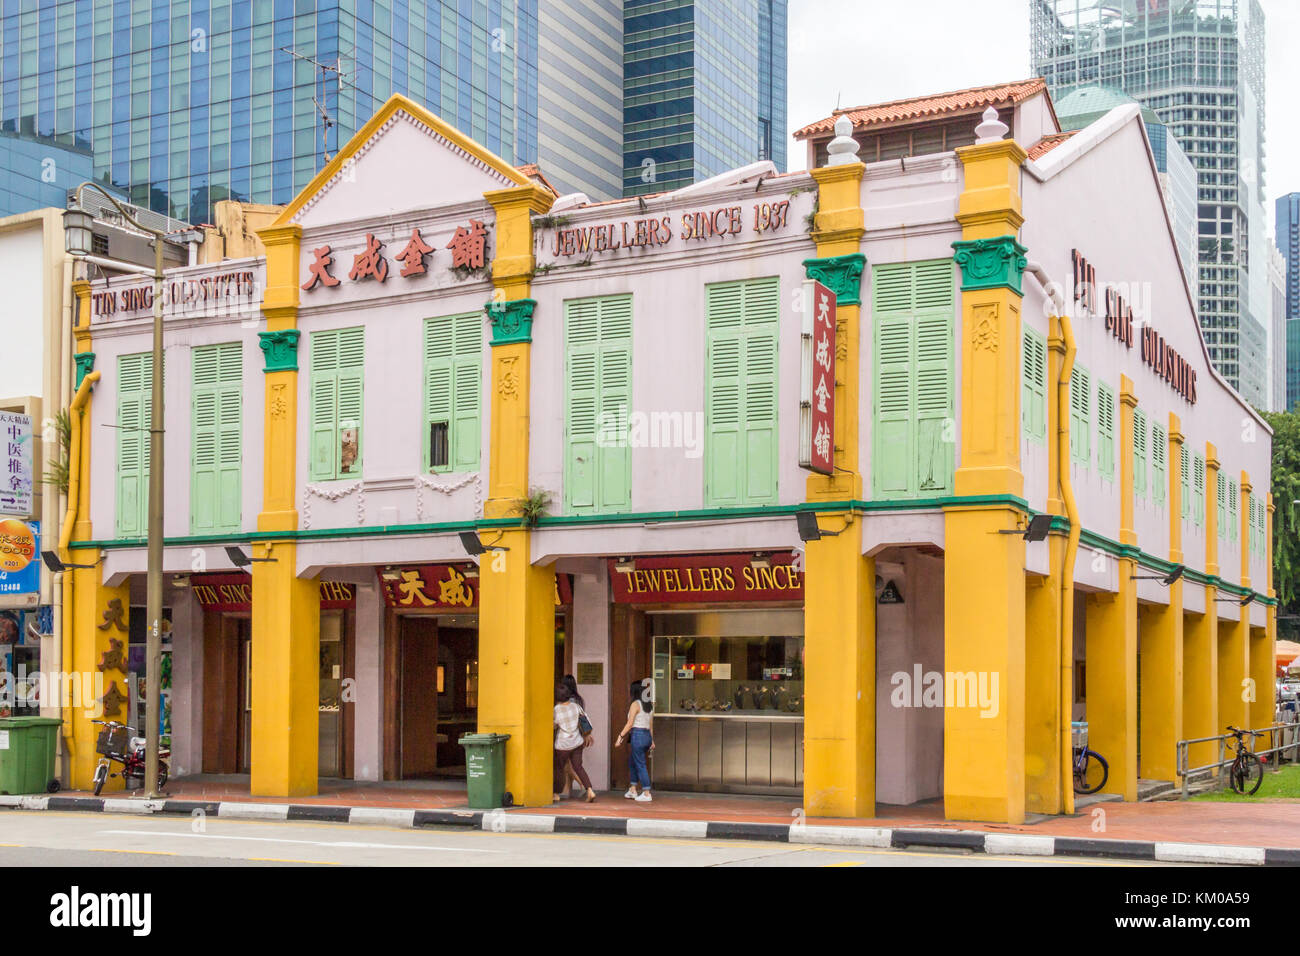 Typical Chinese shophouse building with modern buildings behind, South Bridge Road, Chinatown, Singapore - Stock Image